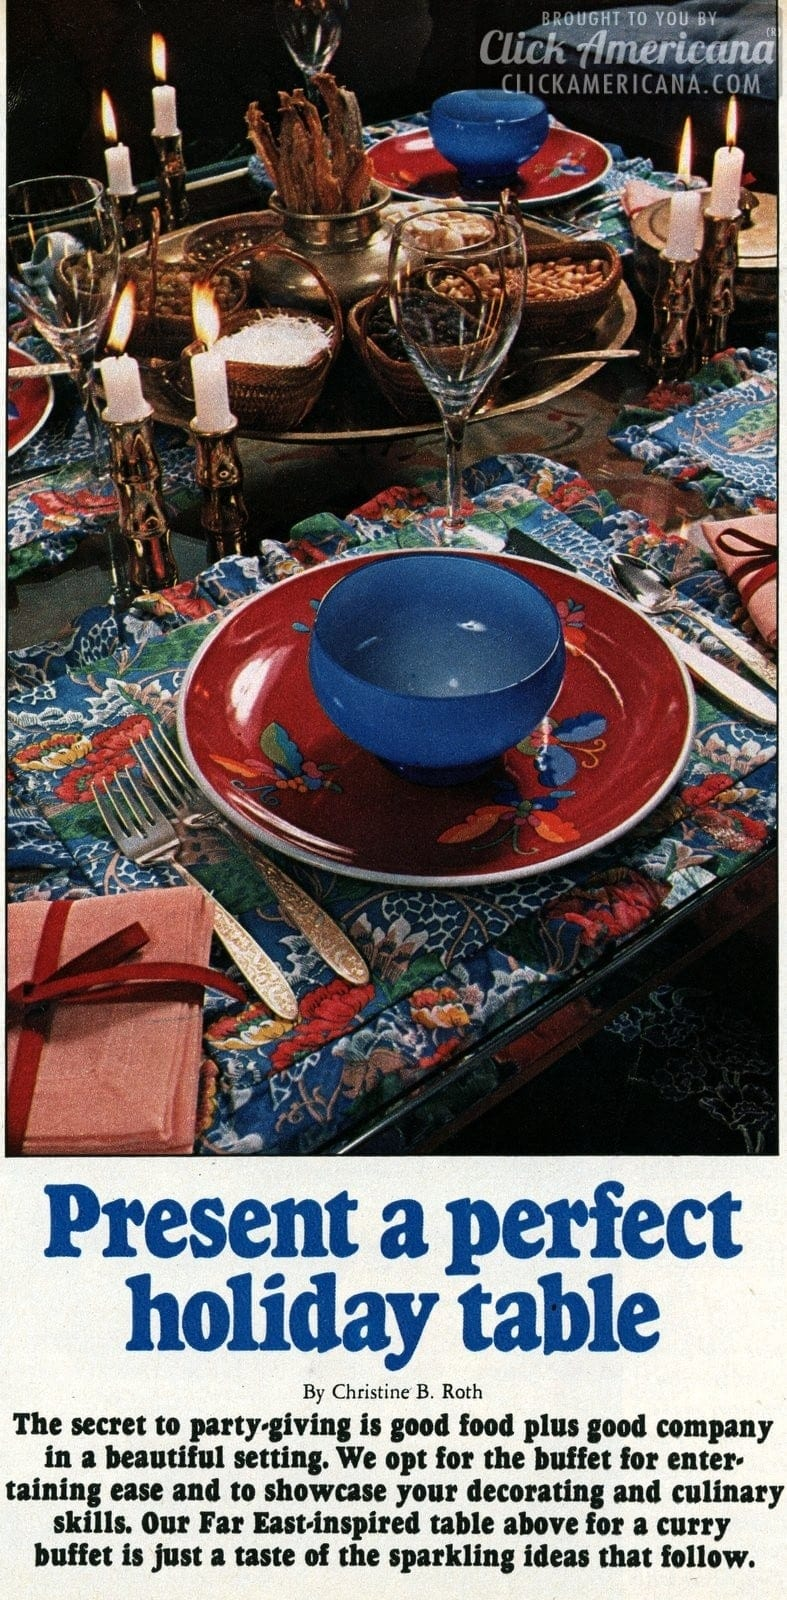 How to present a perfect holiday table (1967)